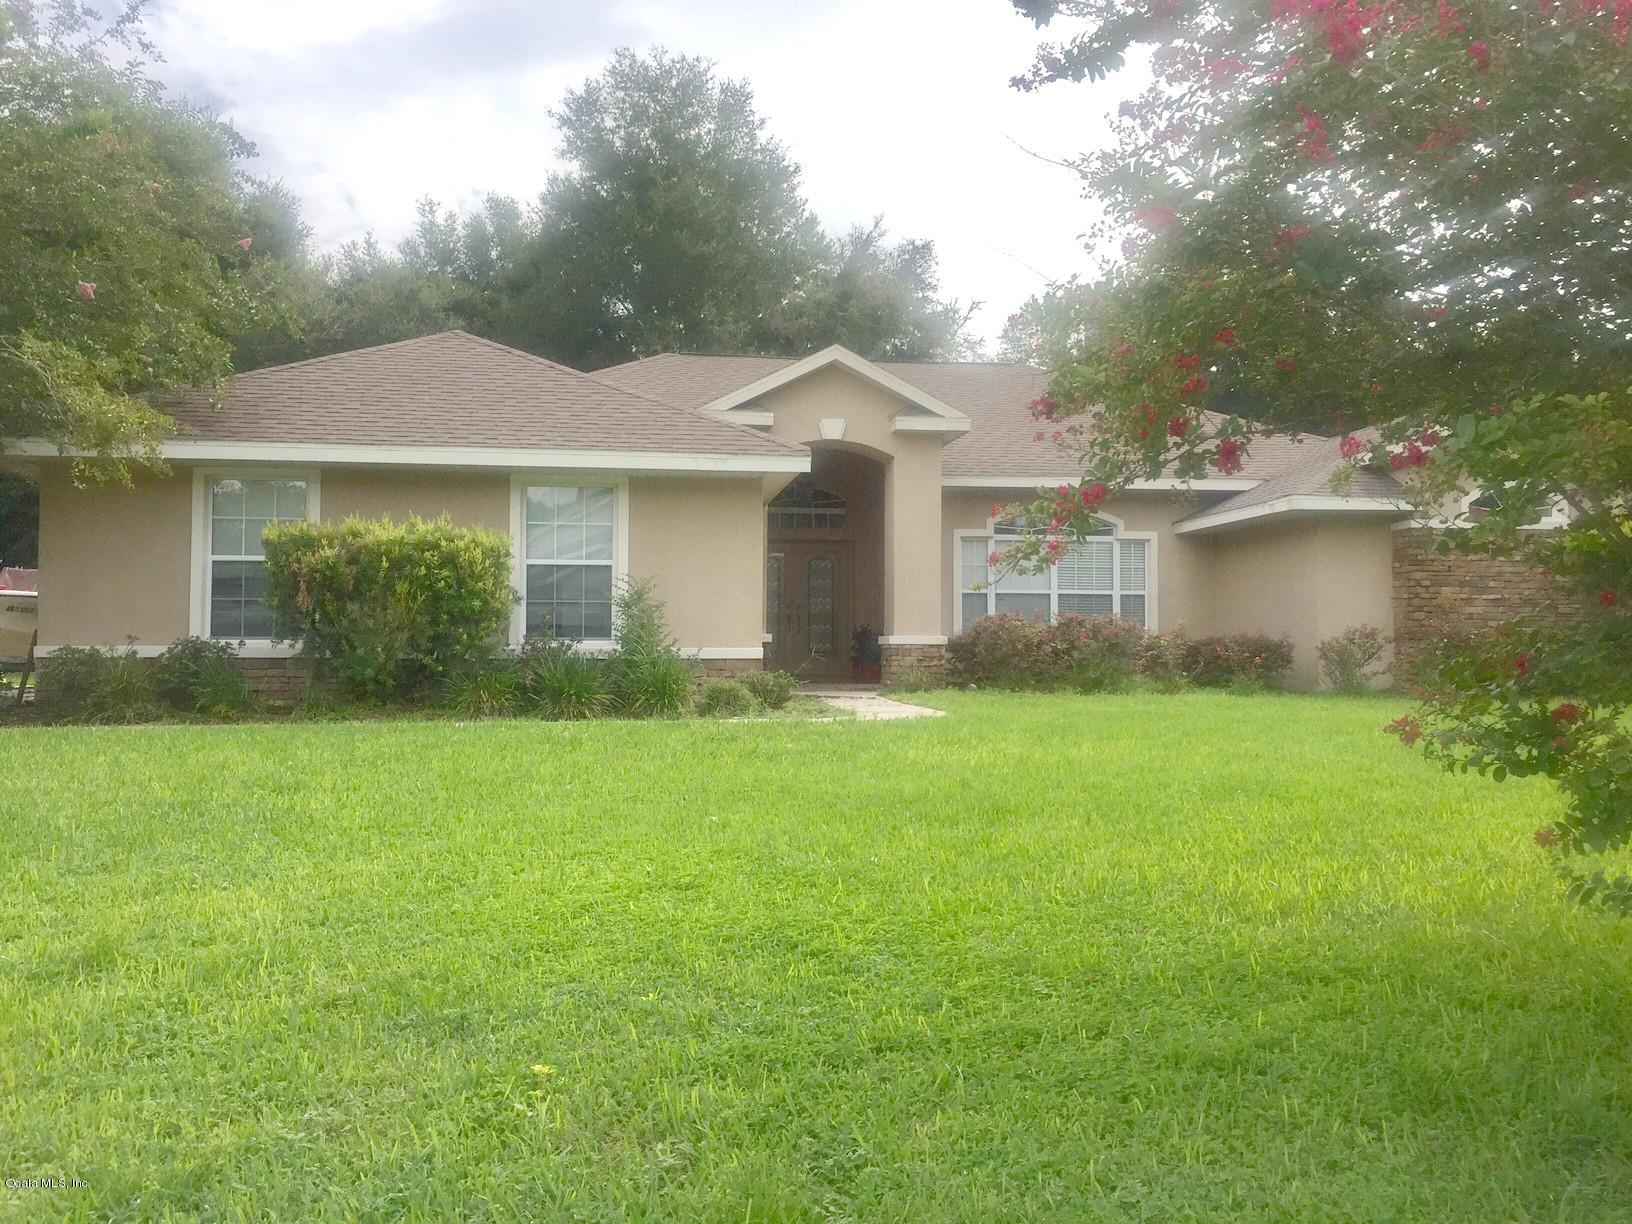 5025 SE 47TH TERRACE RD, OCALA, FL 34480